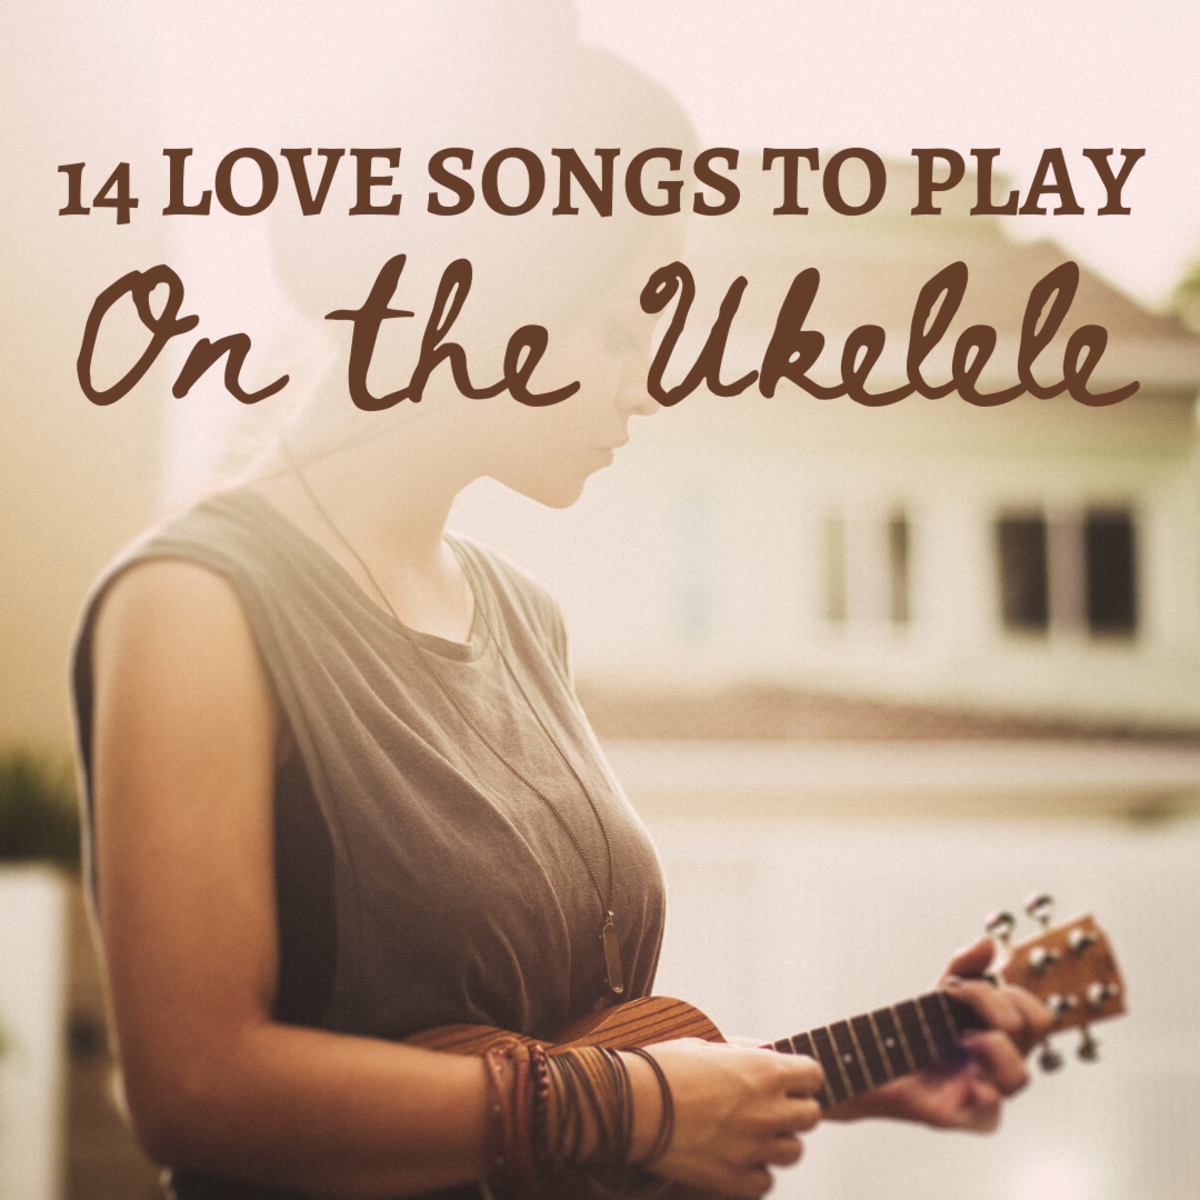 Want to play cute love songs on a ukelele? Here are 14 for you to try!